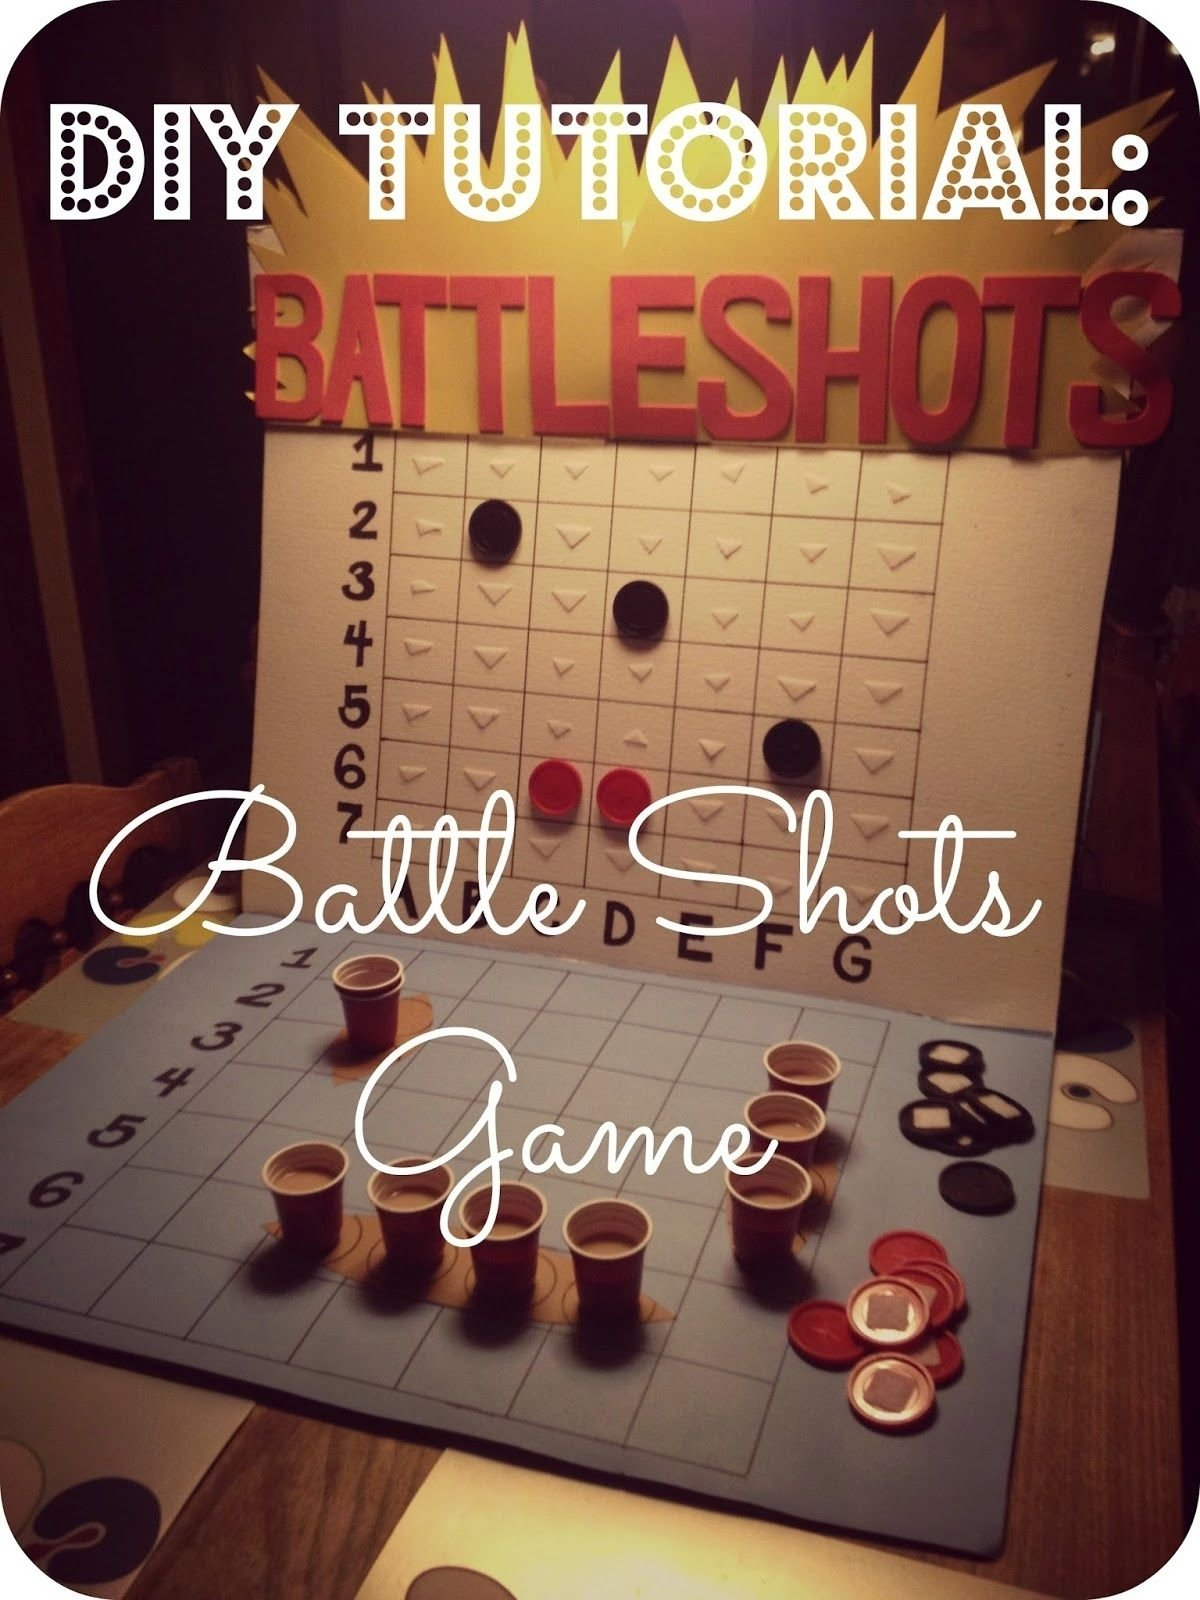 10 Fantastic Game Night Party Ideas For Adults 2messy diy battle shots drinking game why didnt i think of